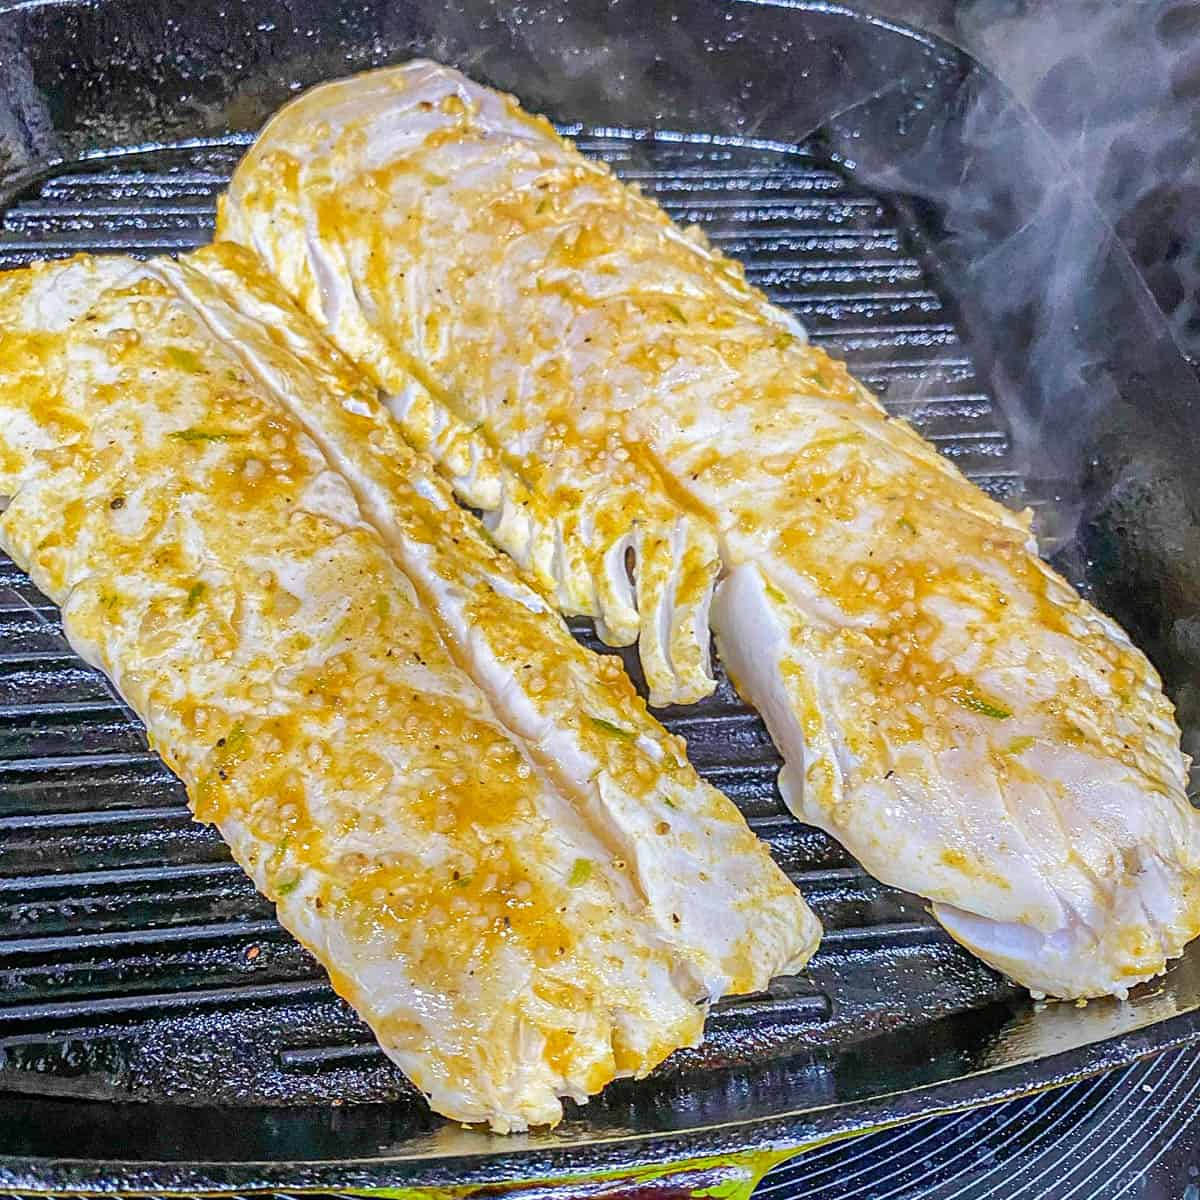 A cast iron grill pan with 2 marinated fish fillets.